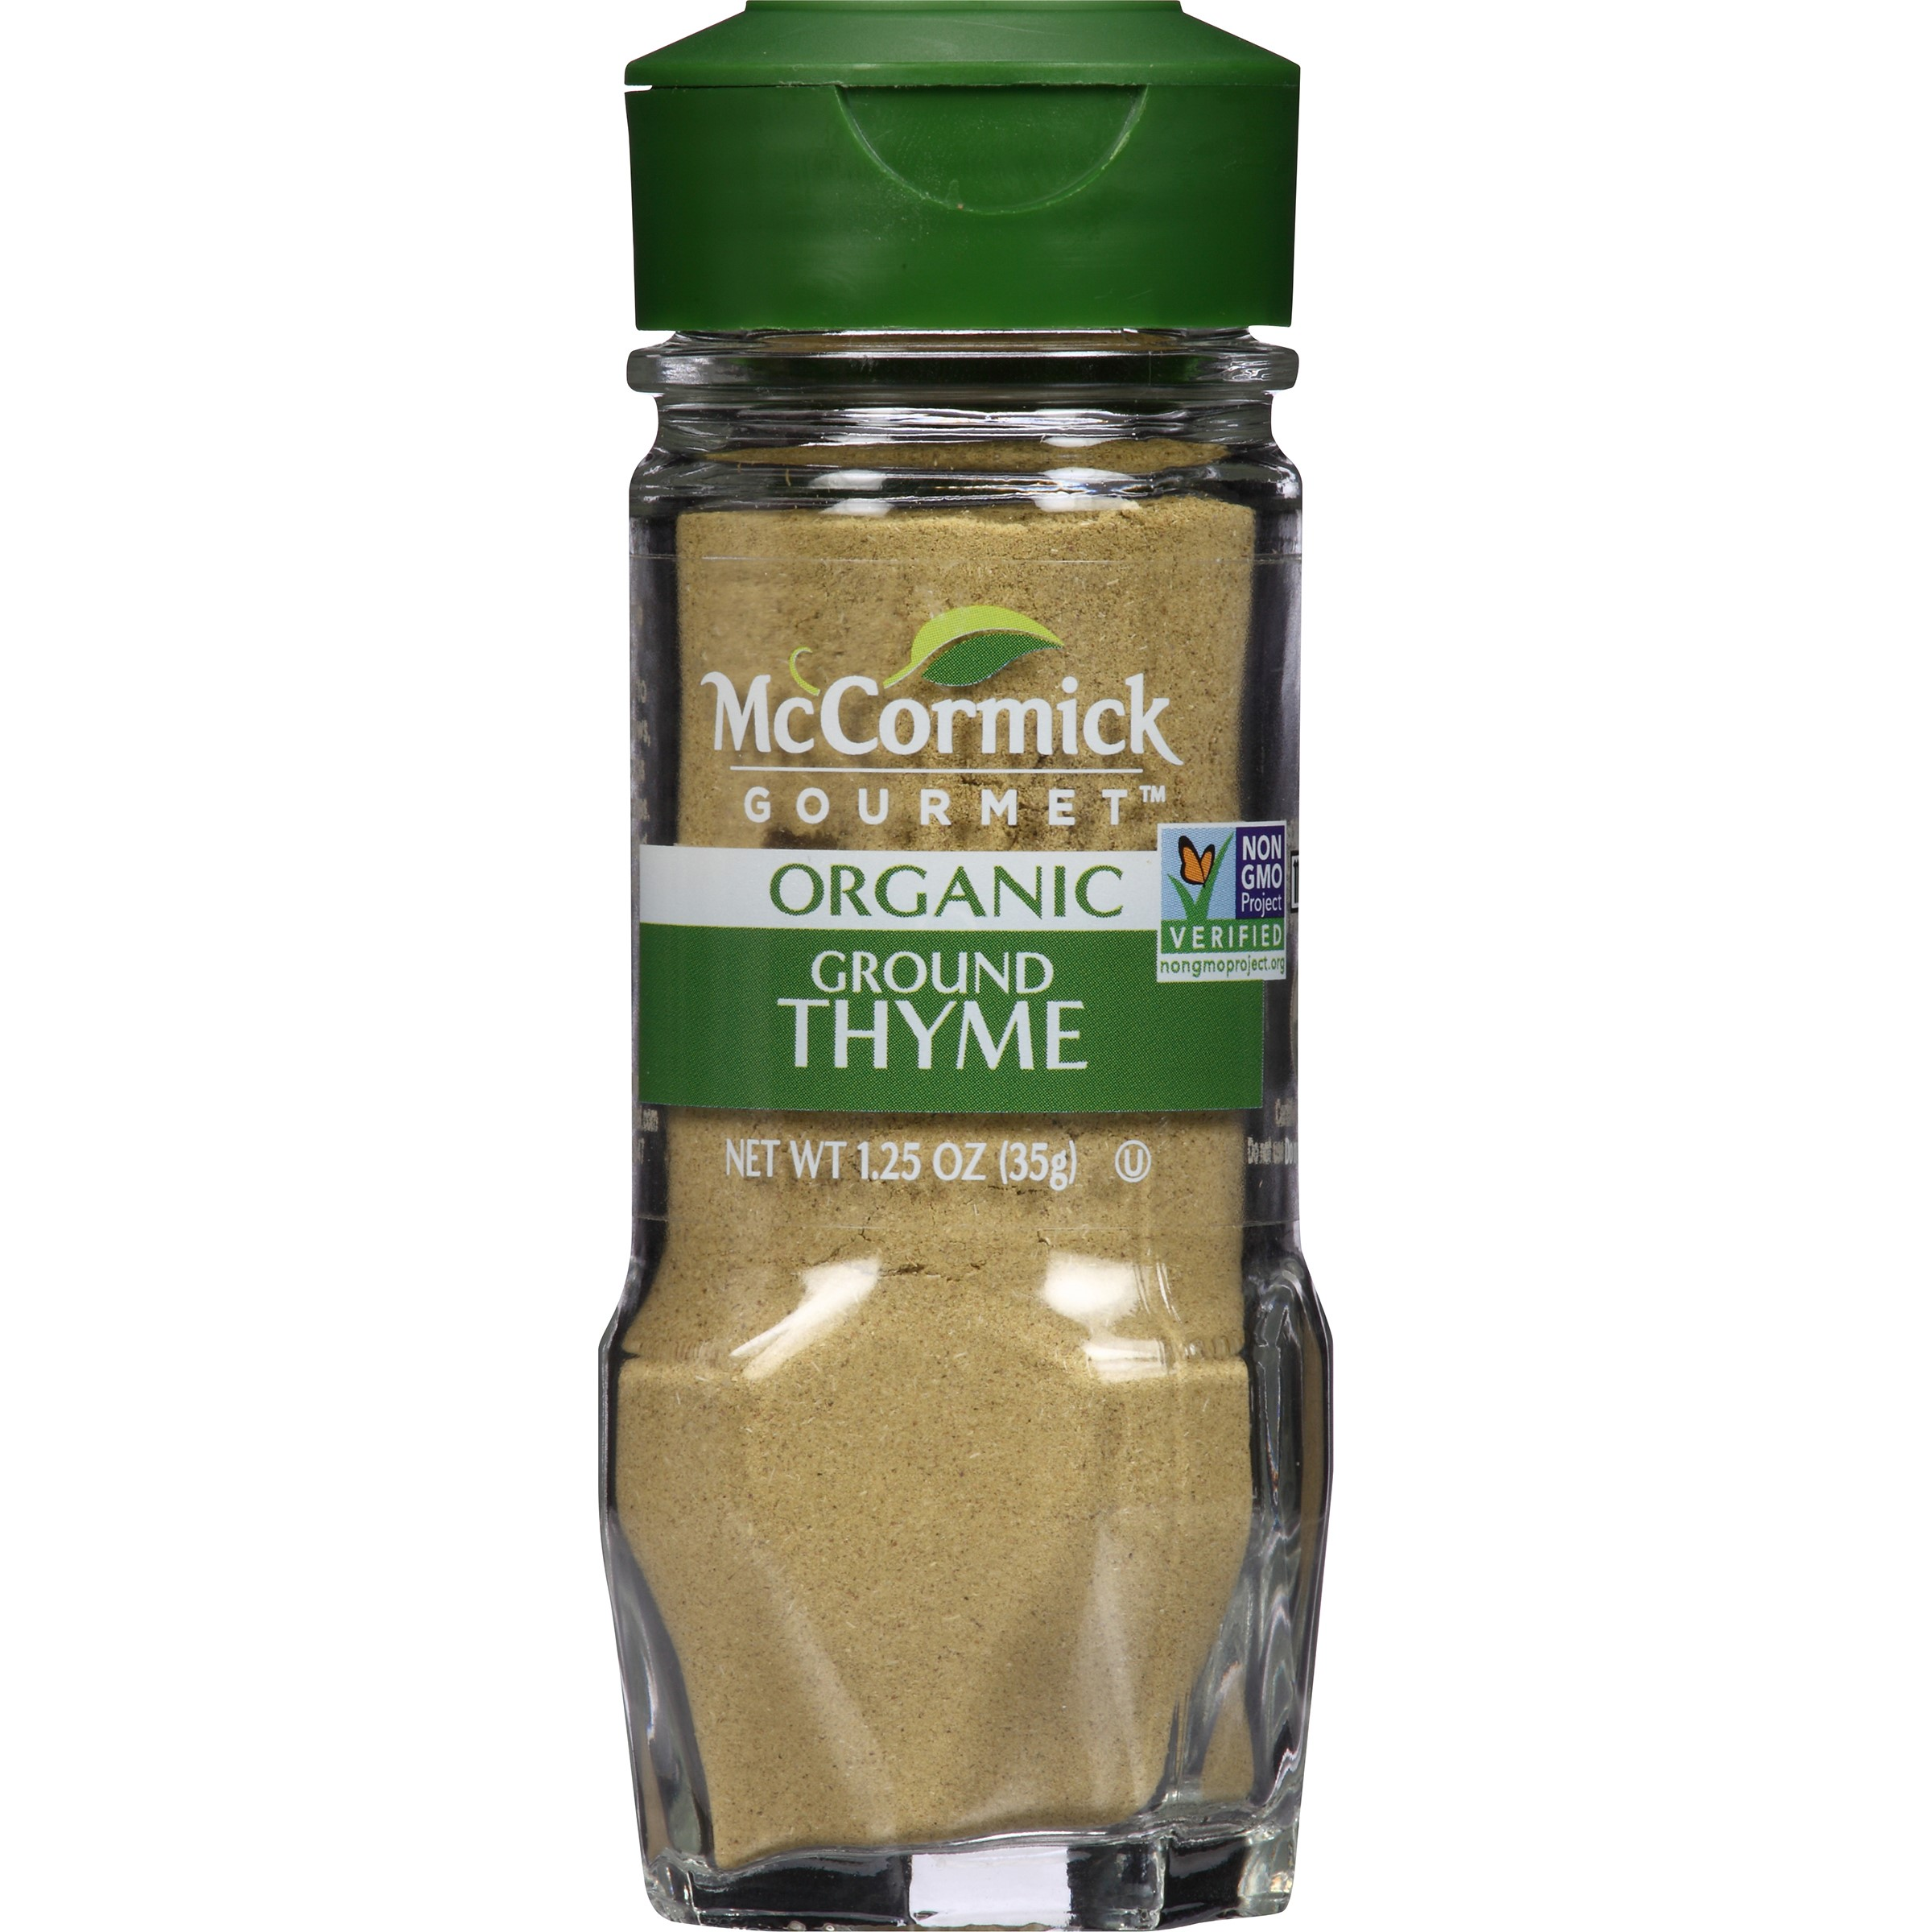 McCormick Gourmet Ground Thyme, 1.25 Oz